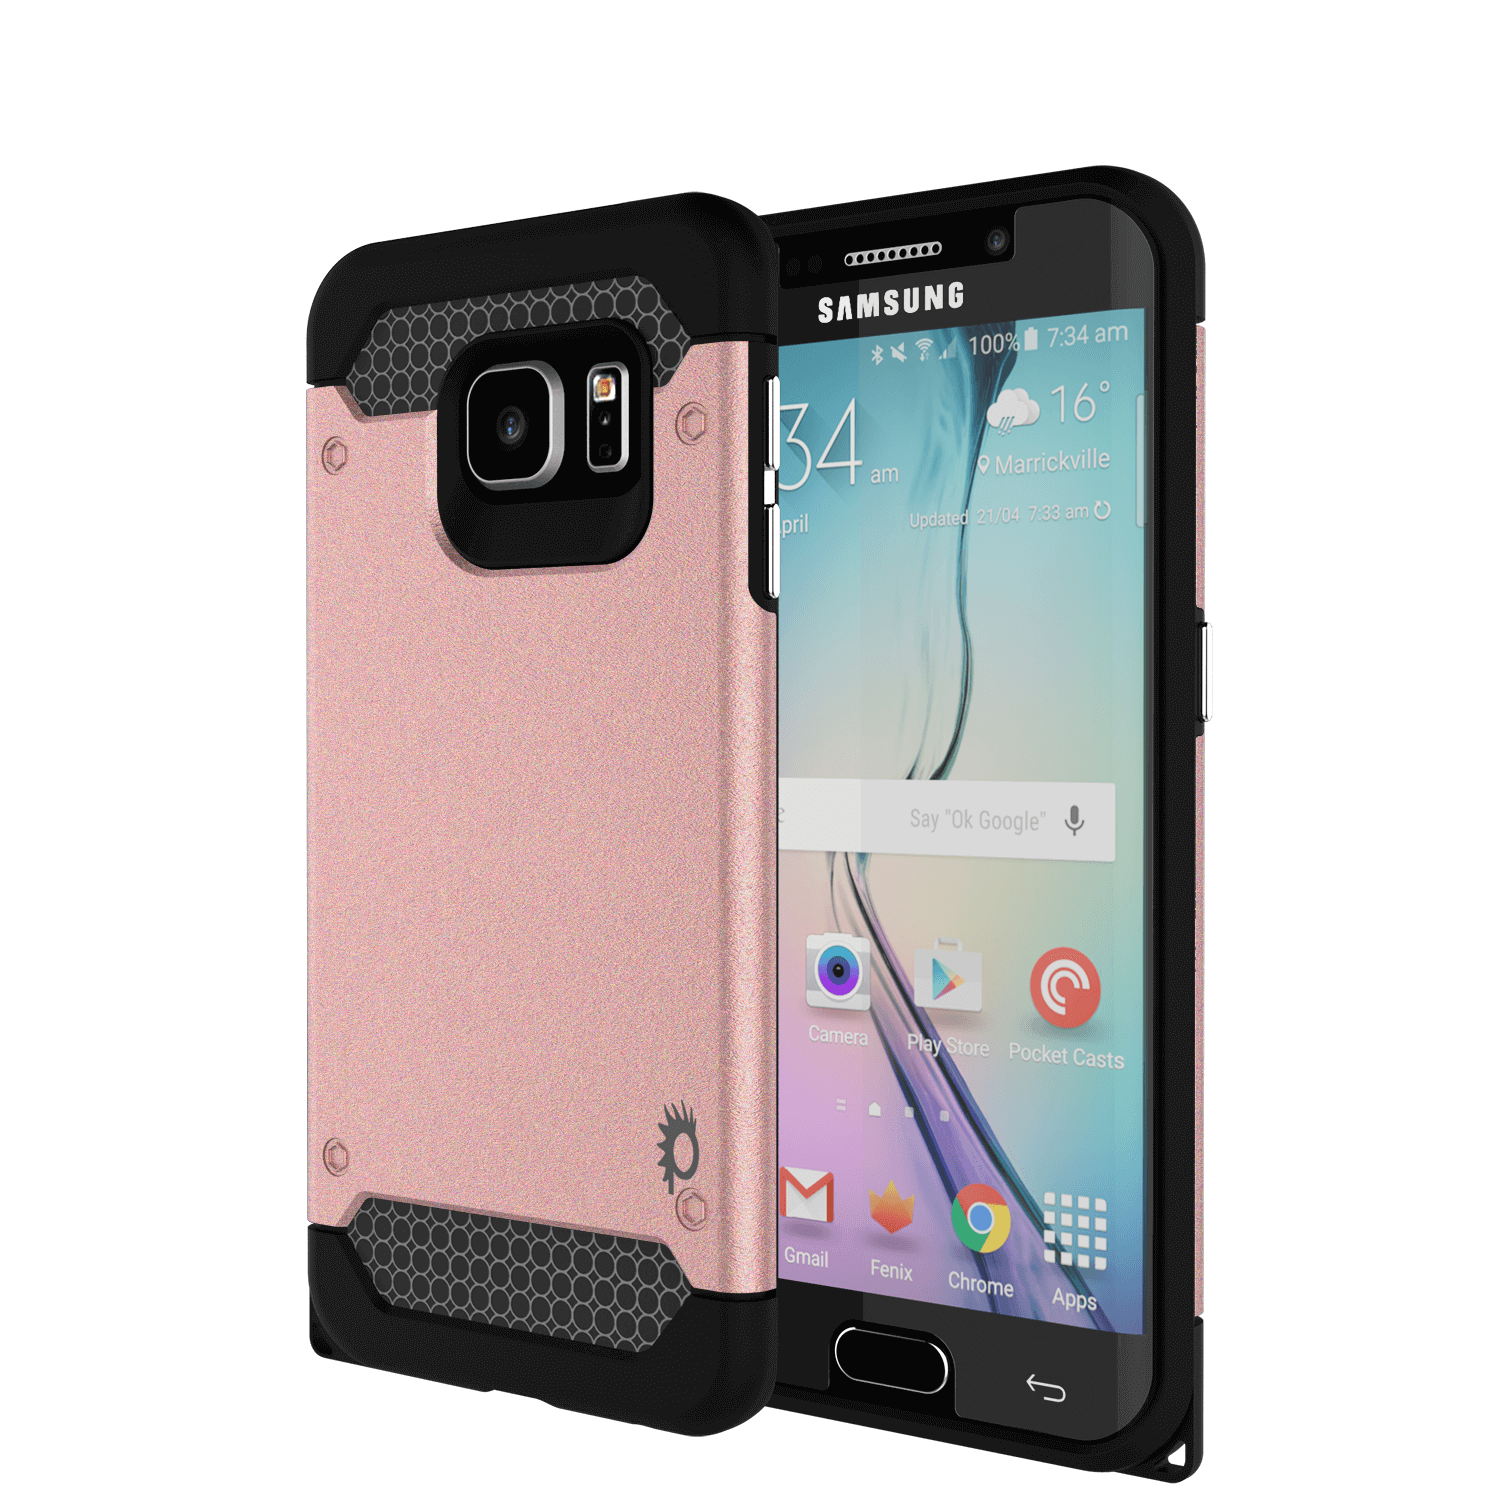 Galaxy s6 EDGE Plus Case PunkCase Galactic Rose Gold Slim Armor Soft Cover w/ Screen Protector